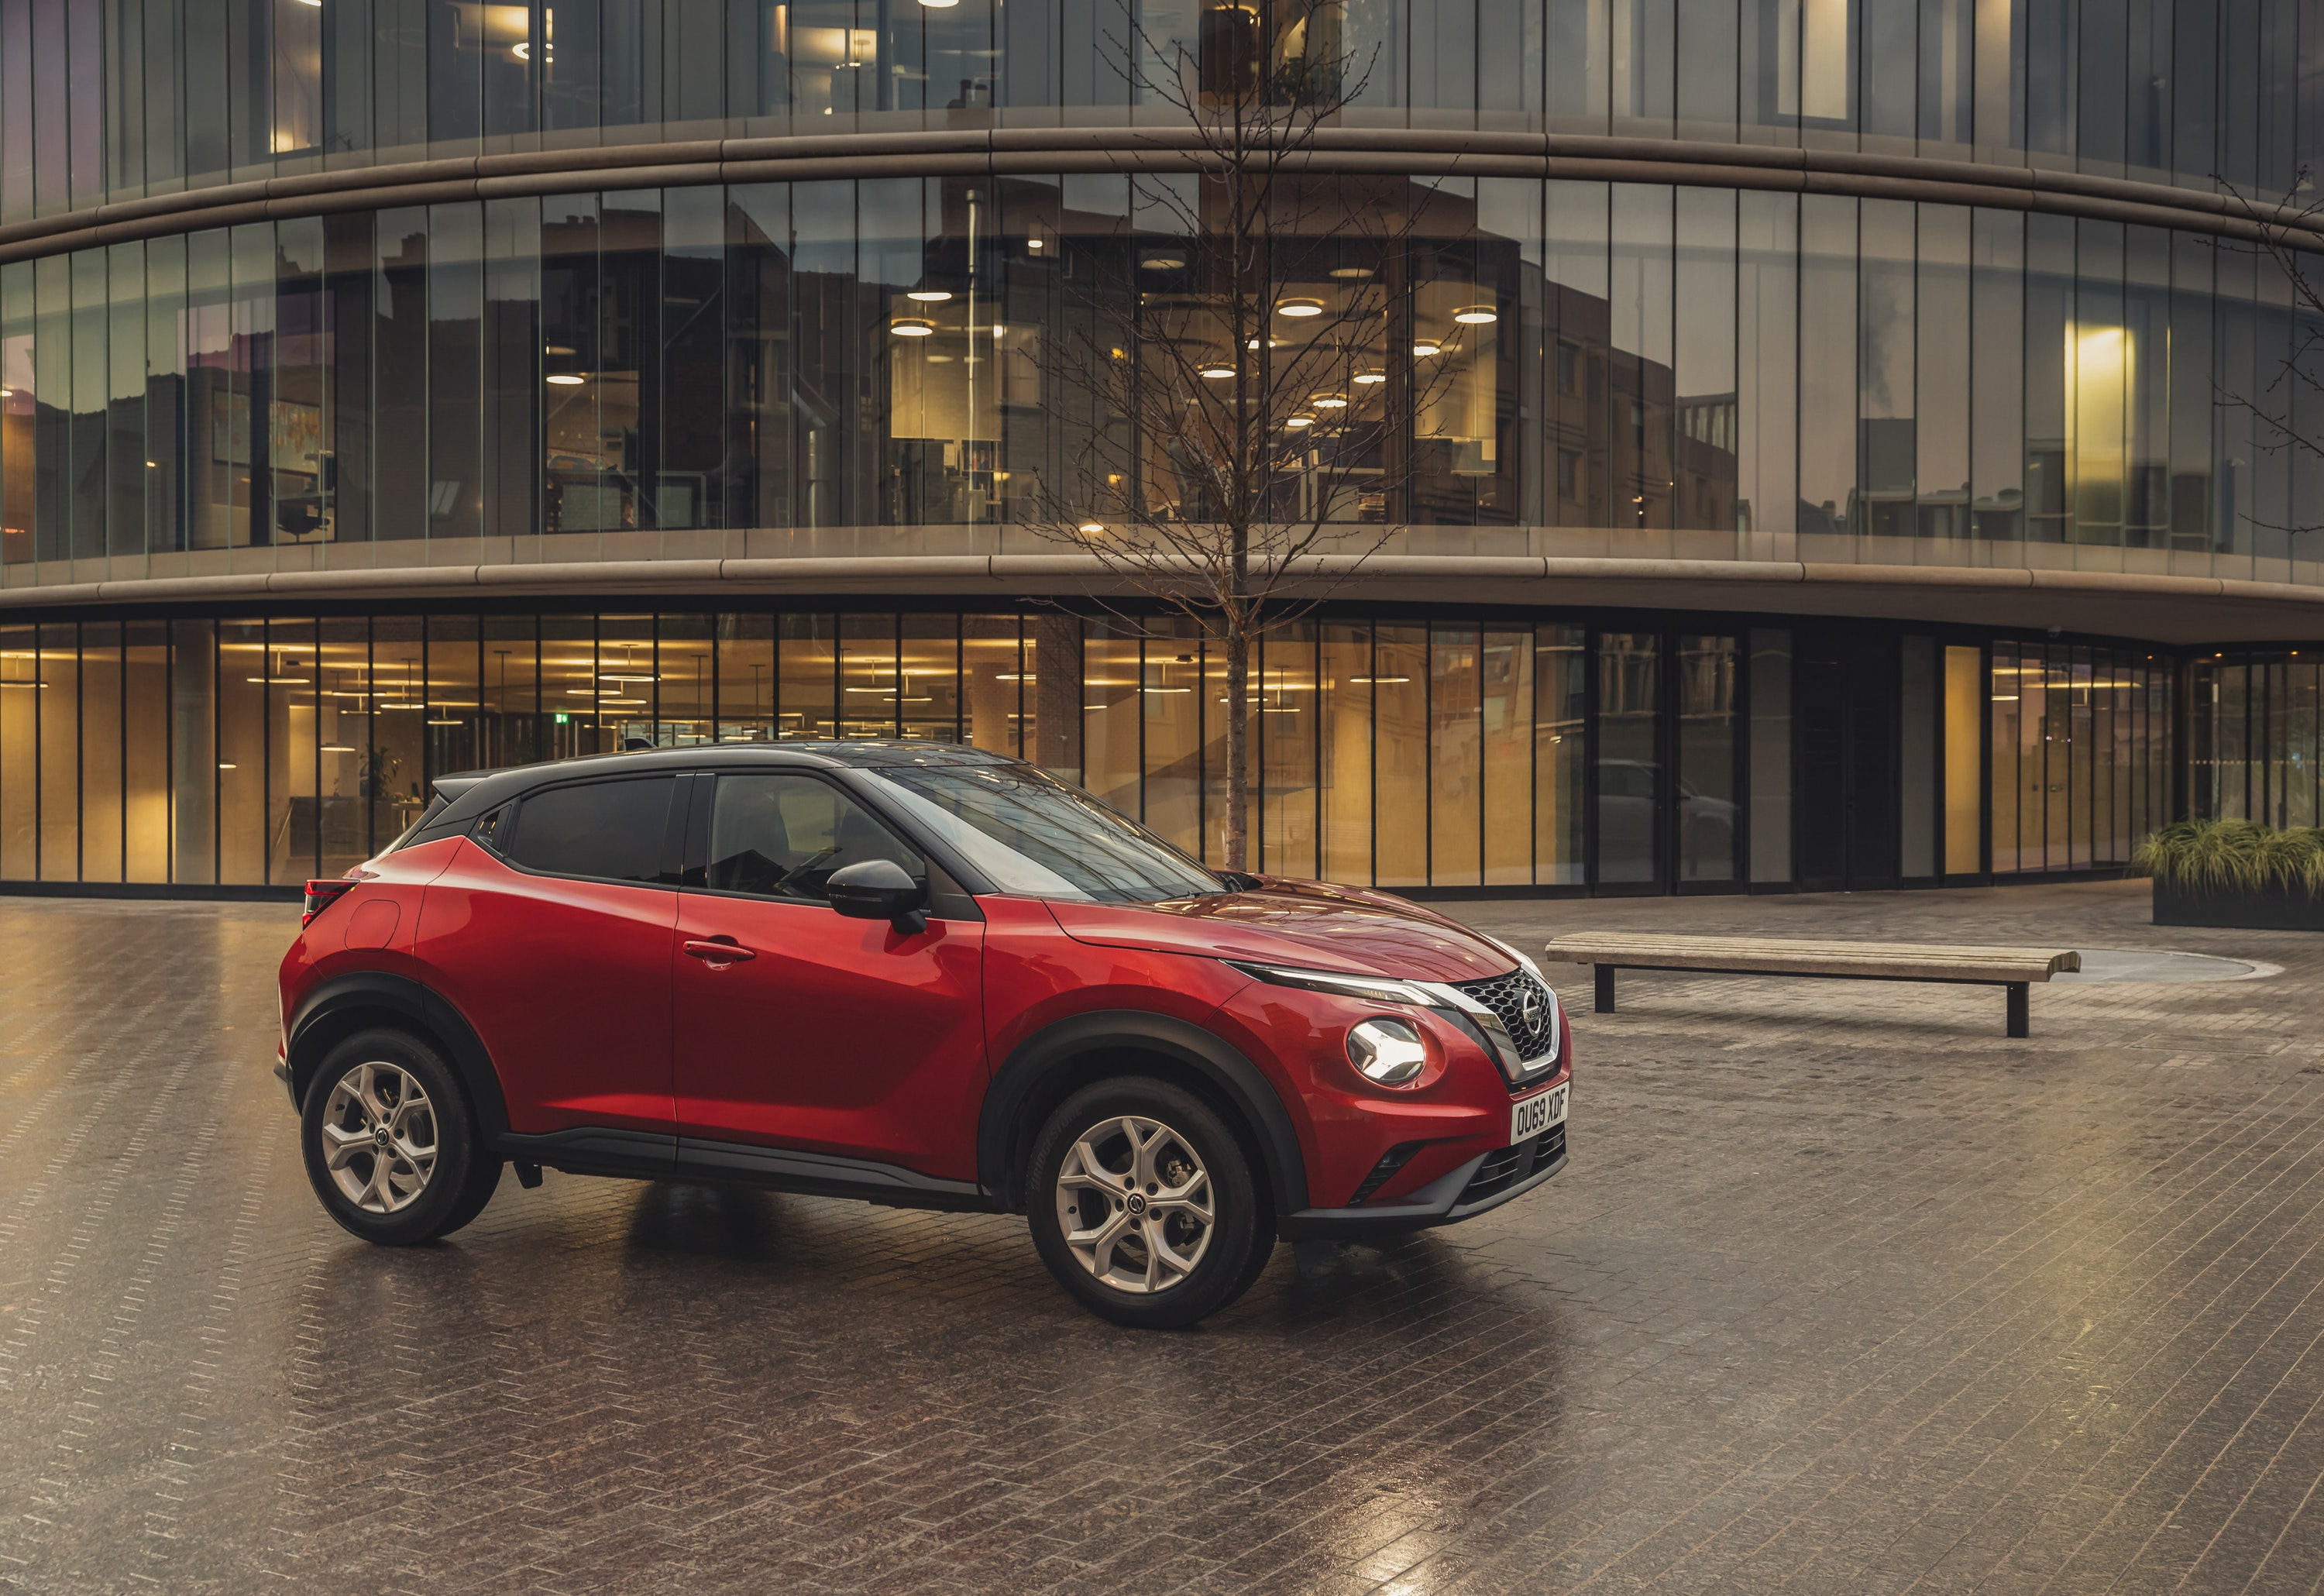 Side view on the Nissan Juke